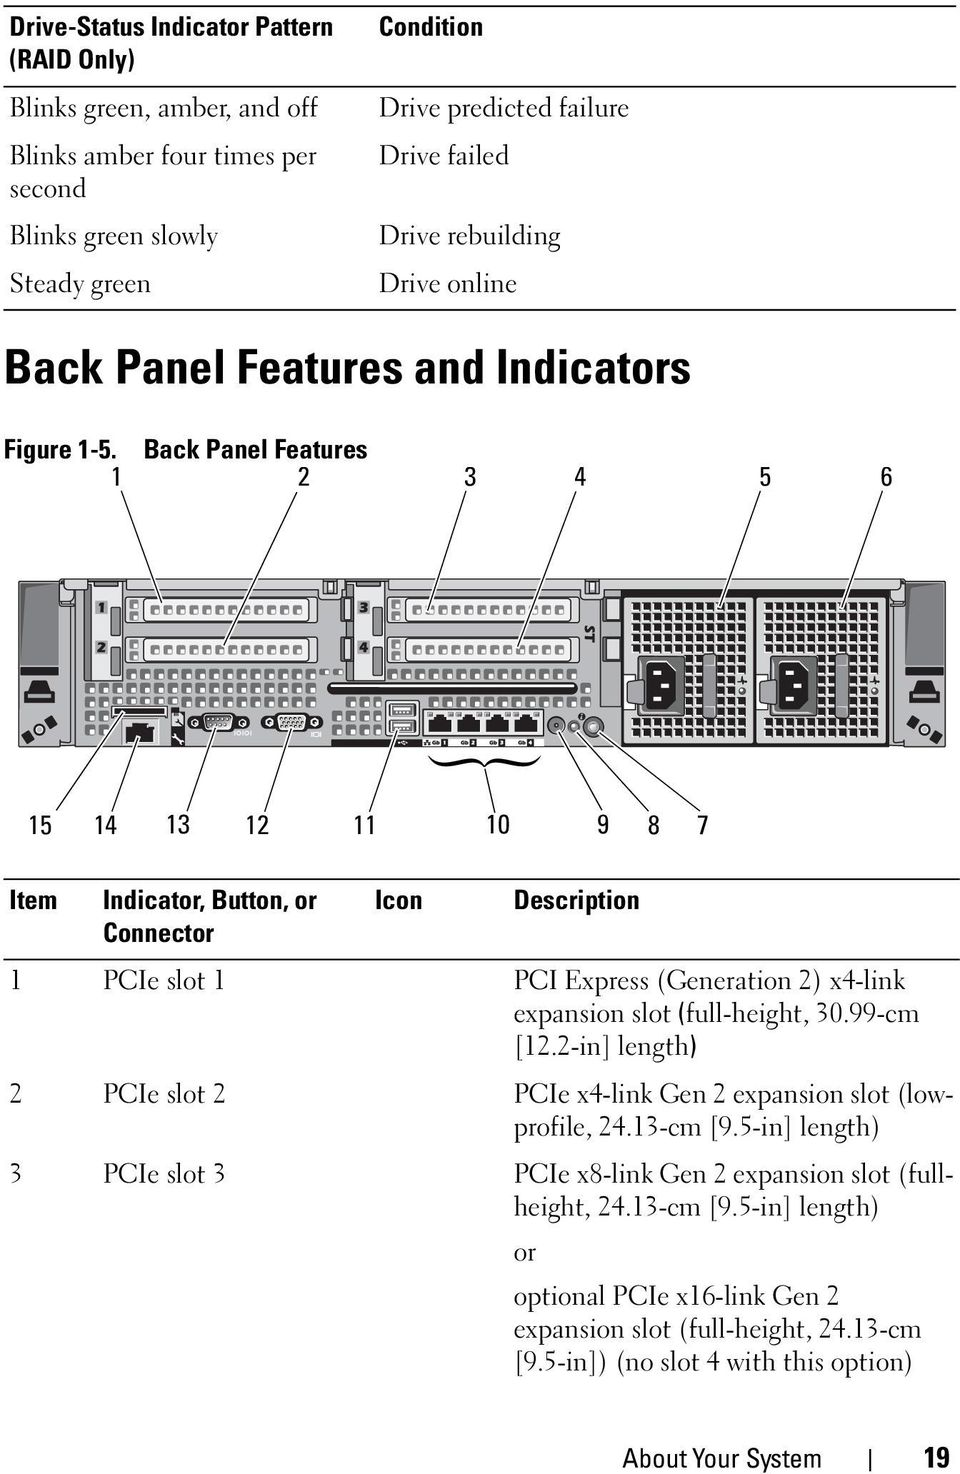 Dell PowerEdge R710 Systems Hardware Owner s Manual - PDF